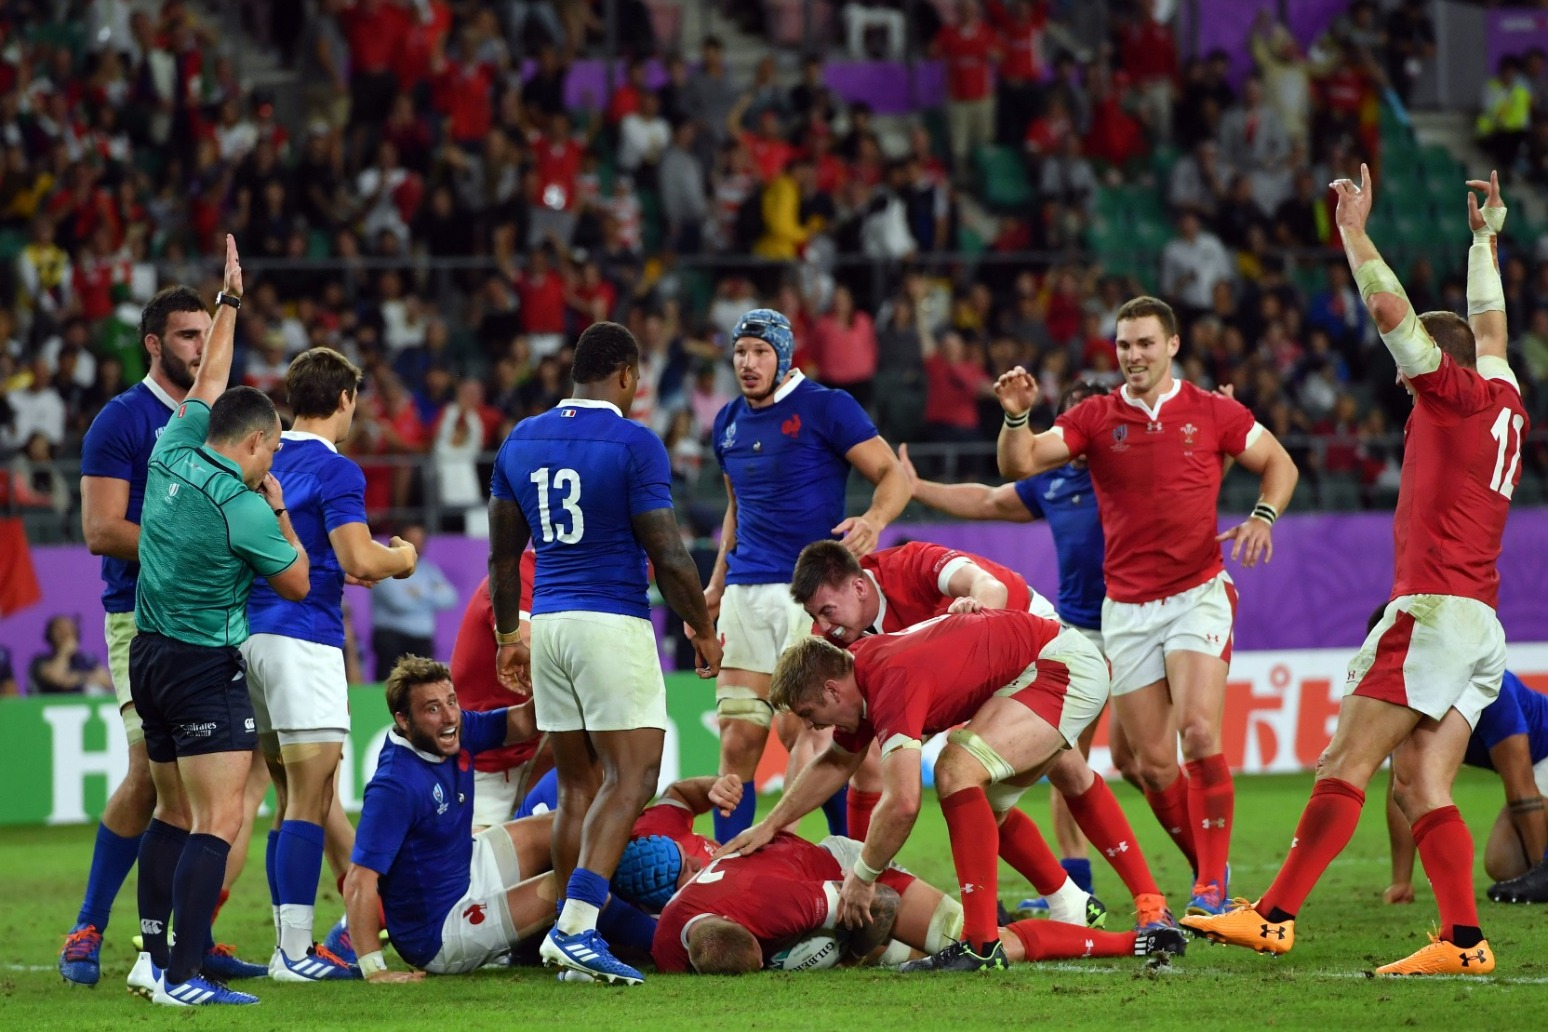 WALES MARCH ON IN WORLD CUP AFTER THRILLING VICTORY OVER FRANCE